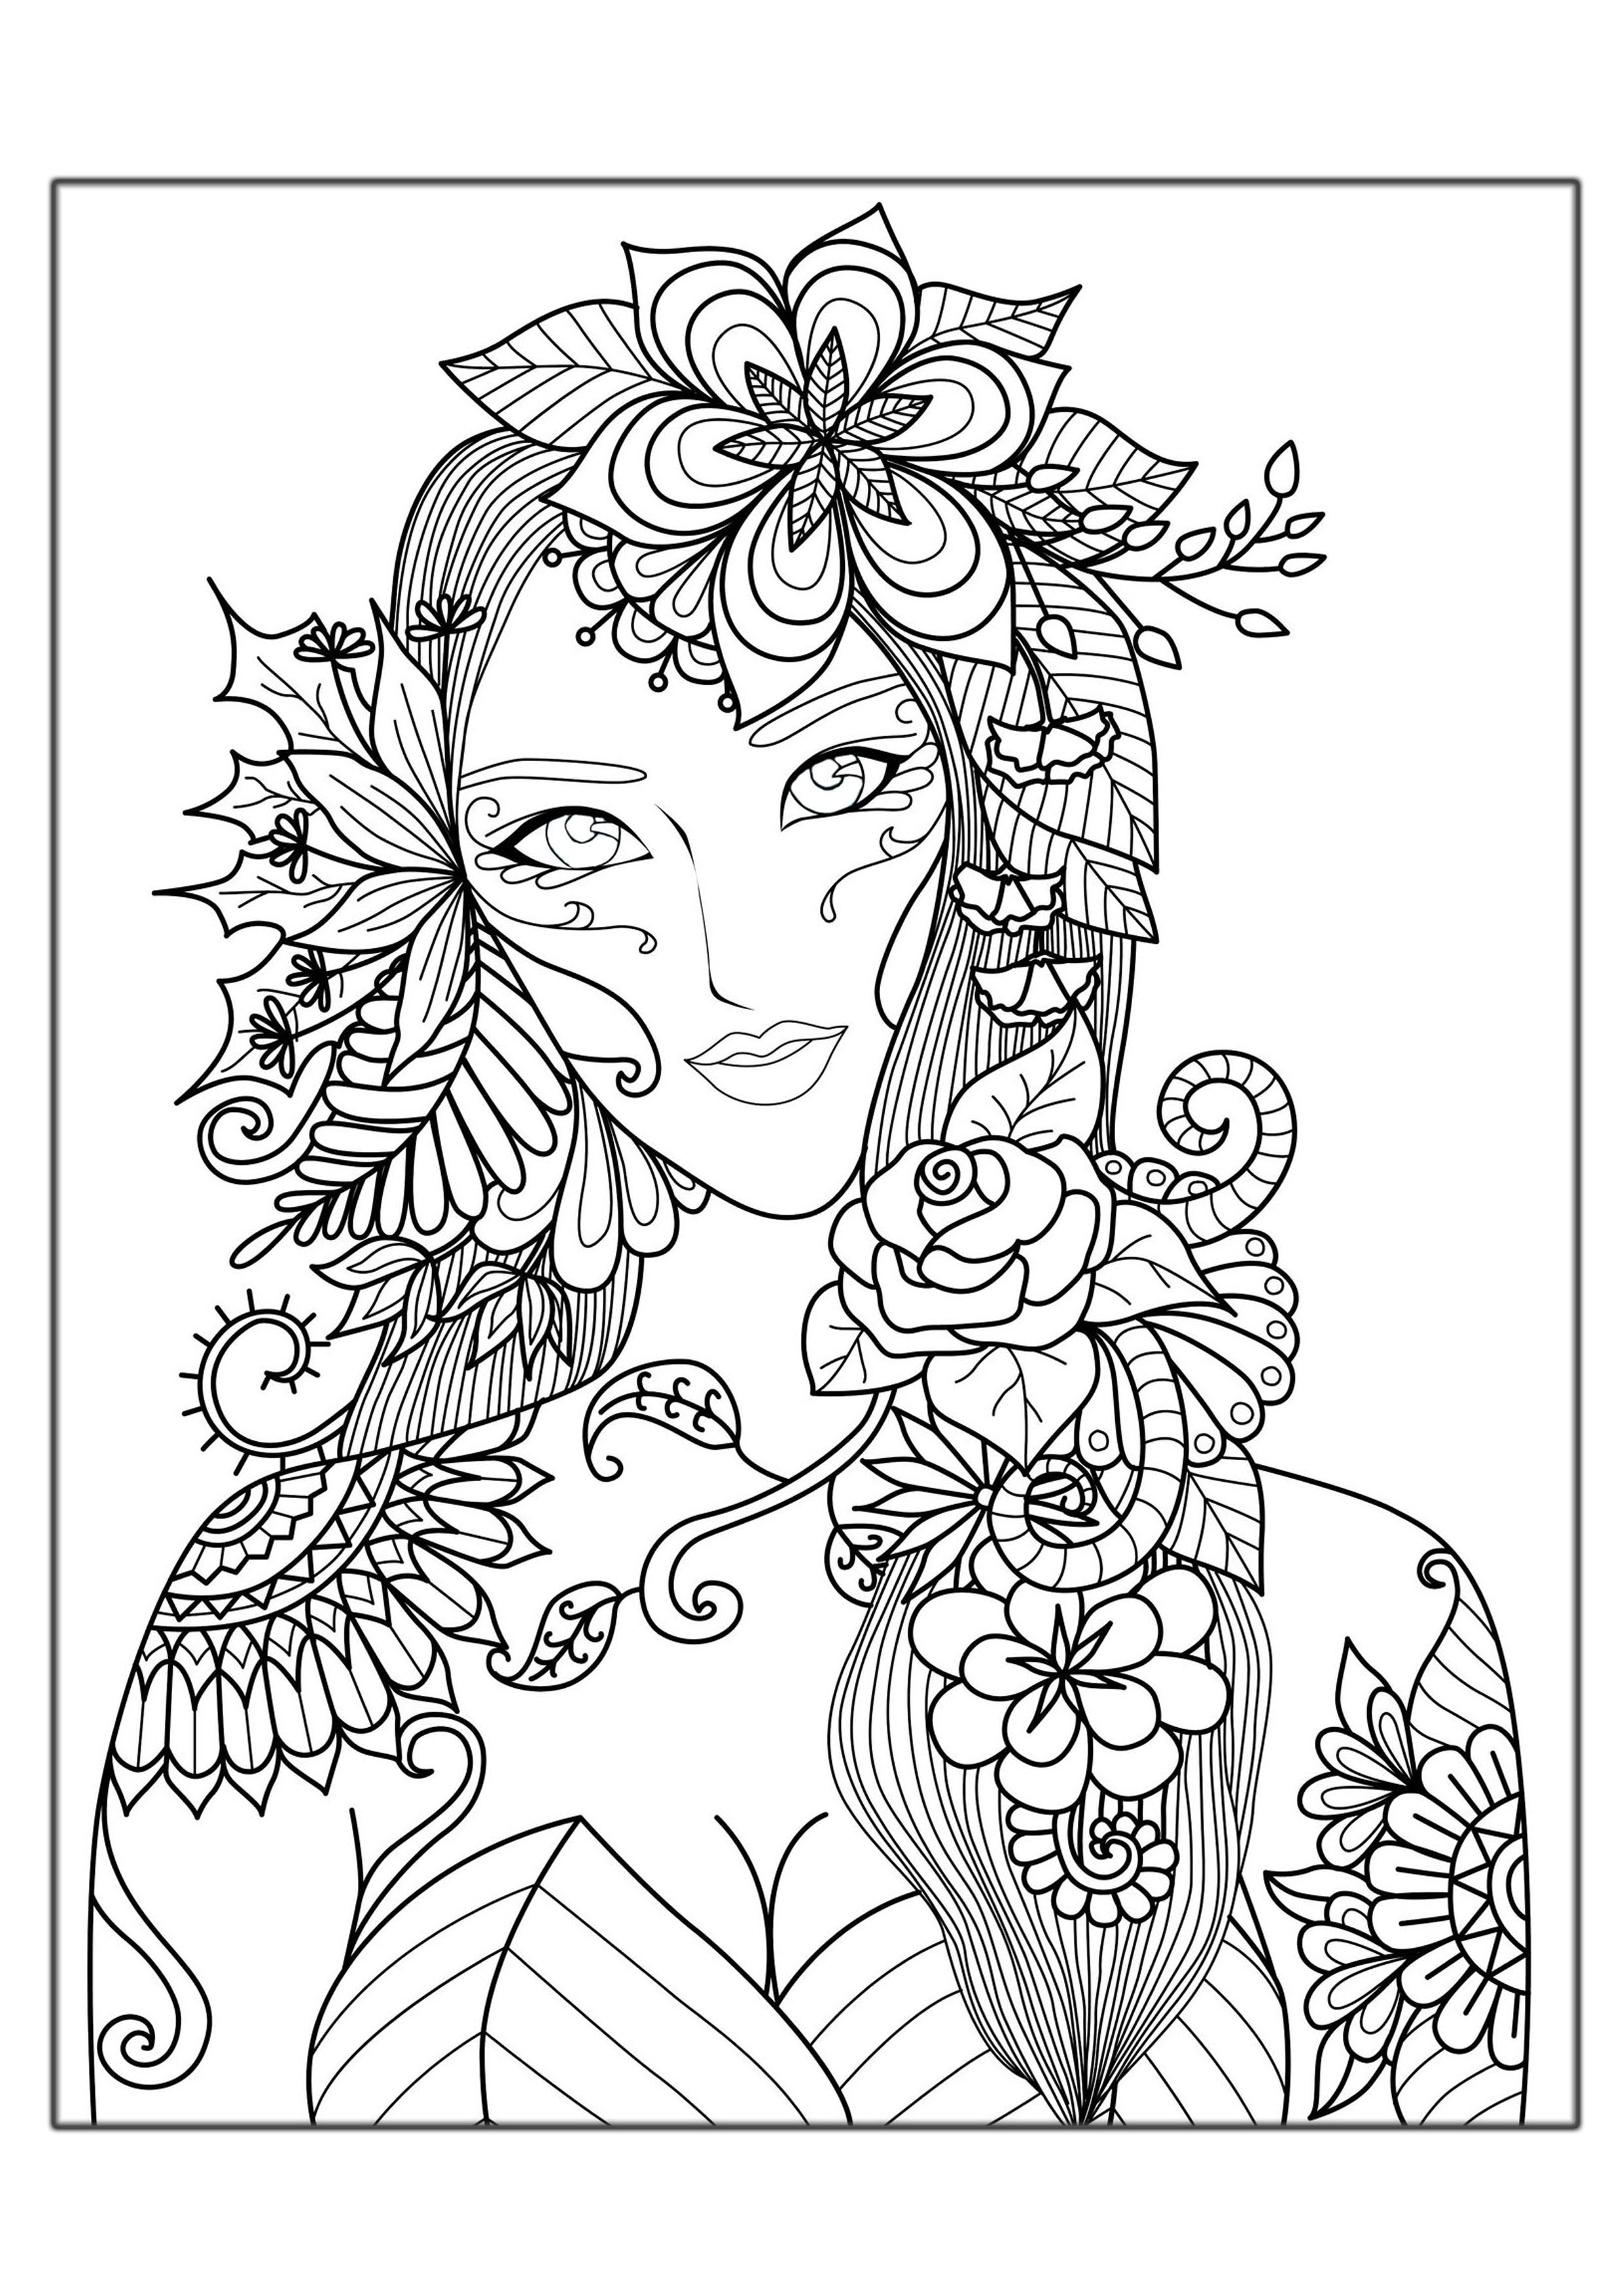 free printable coloring page animal coloring pages best coloring pages for kids printable coloring page free